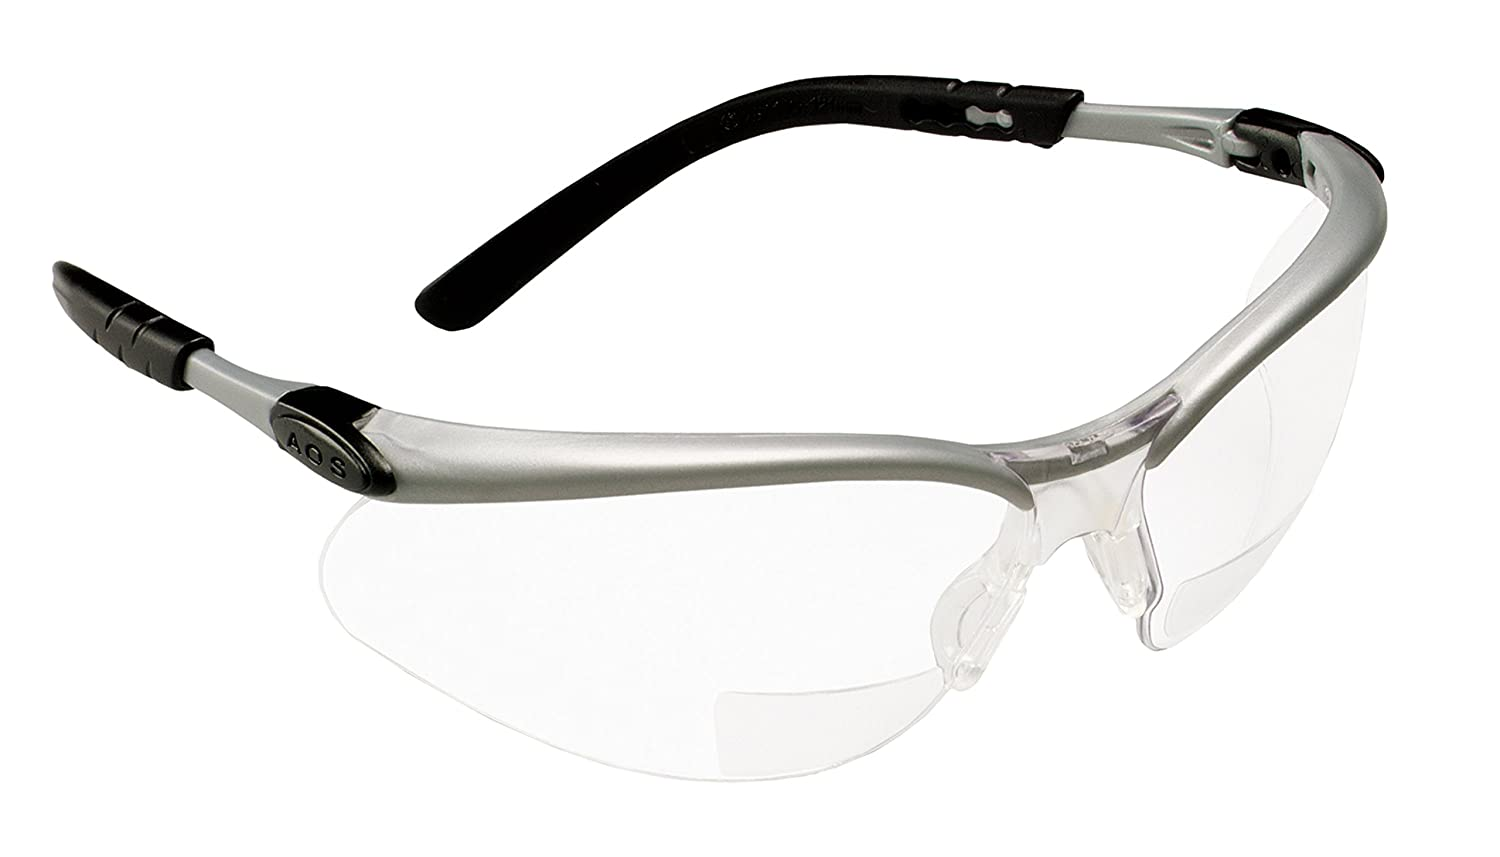 8f11a5a0459 3M Reader +2.0 Diopter Safety Glasses